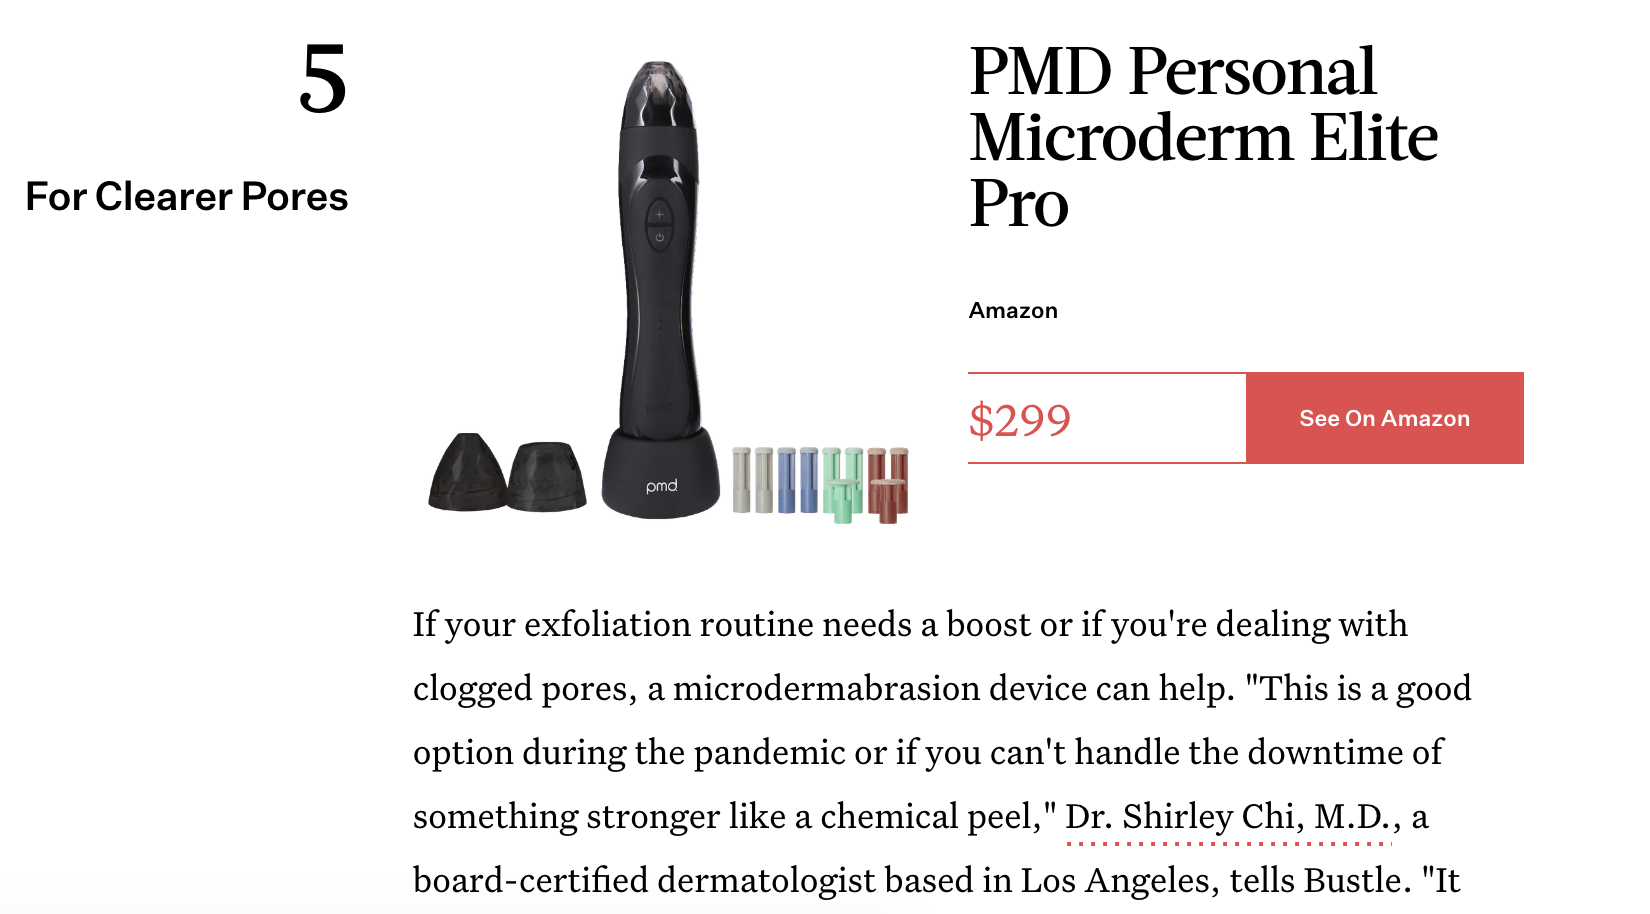 Excerpt featuring the PMD Personal Microderm Elite Pro in Black from Bustle Article